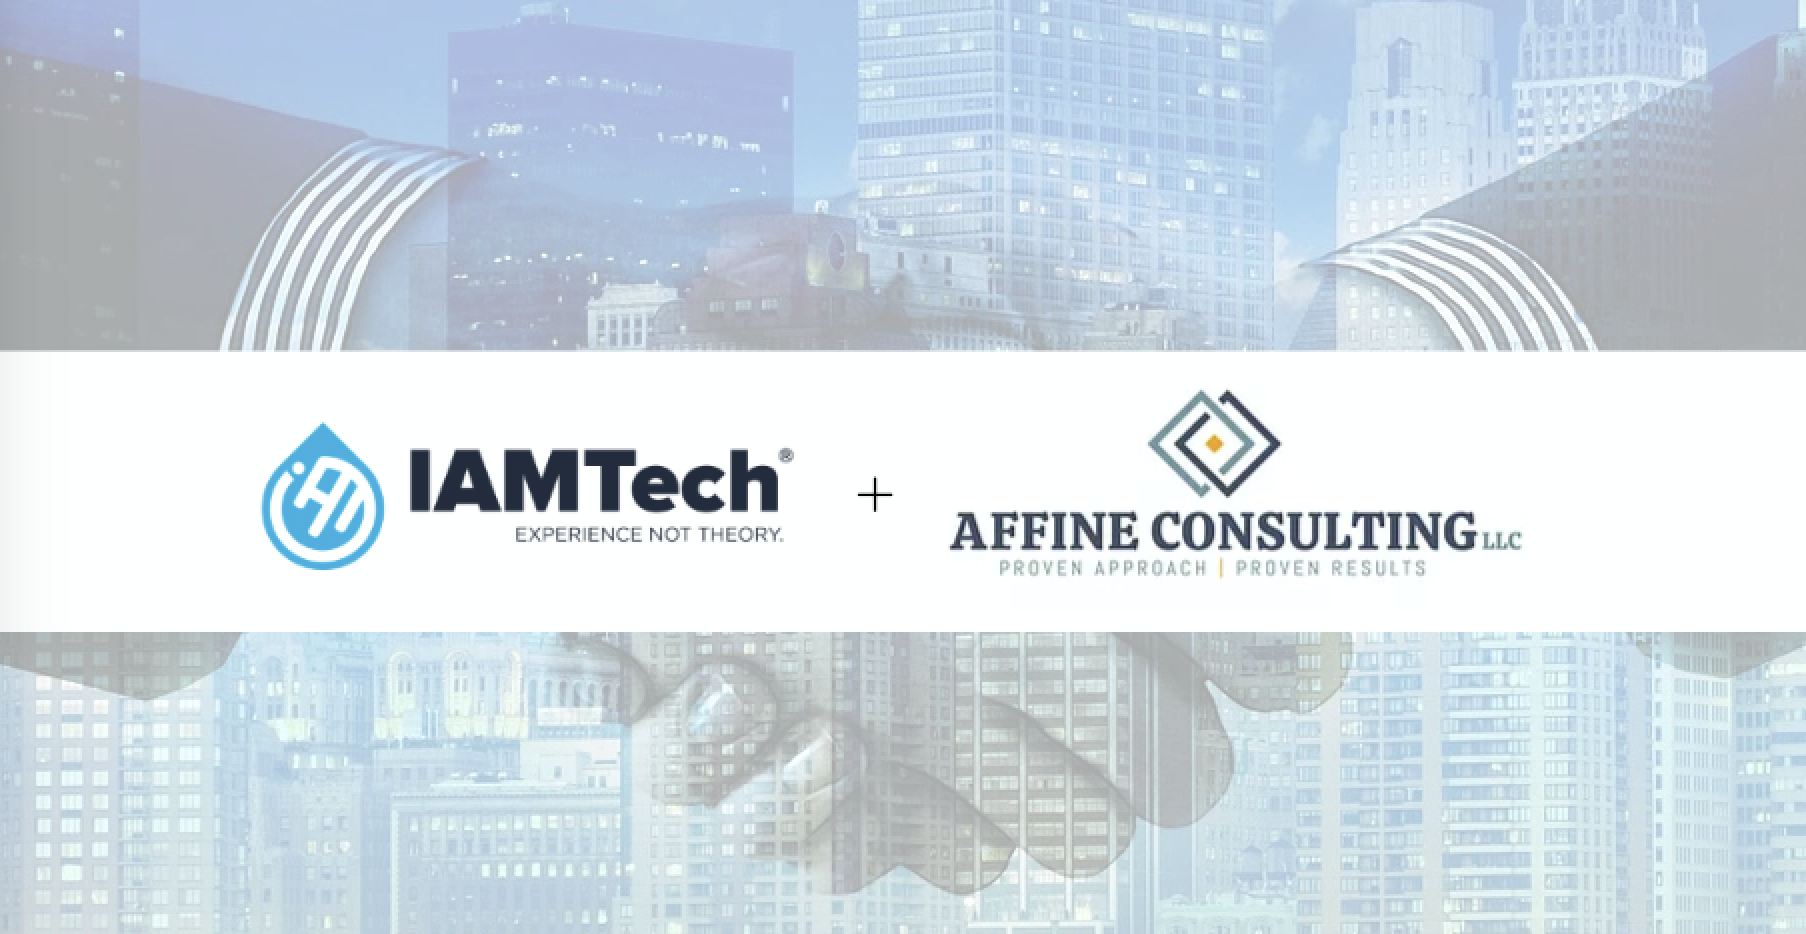 Dynamic Duo to launch industrial software solution in America